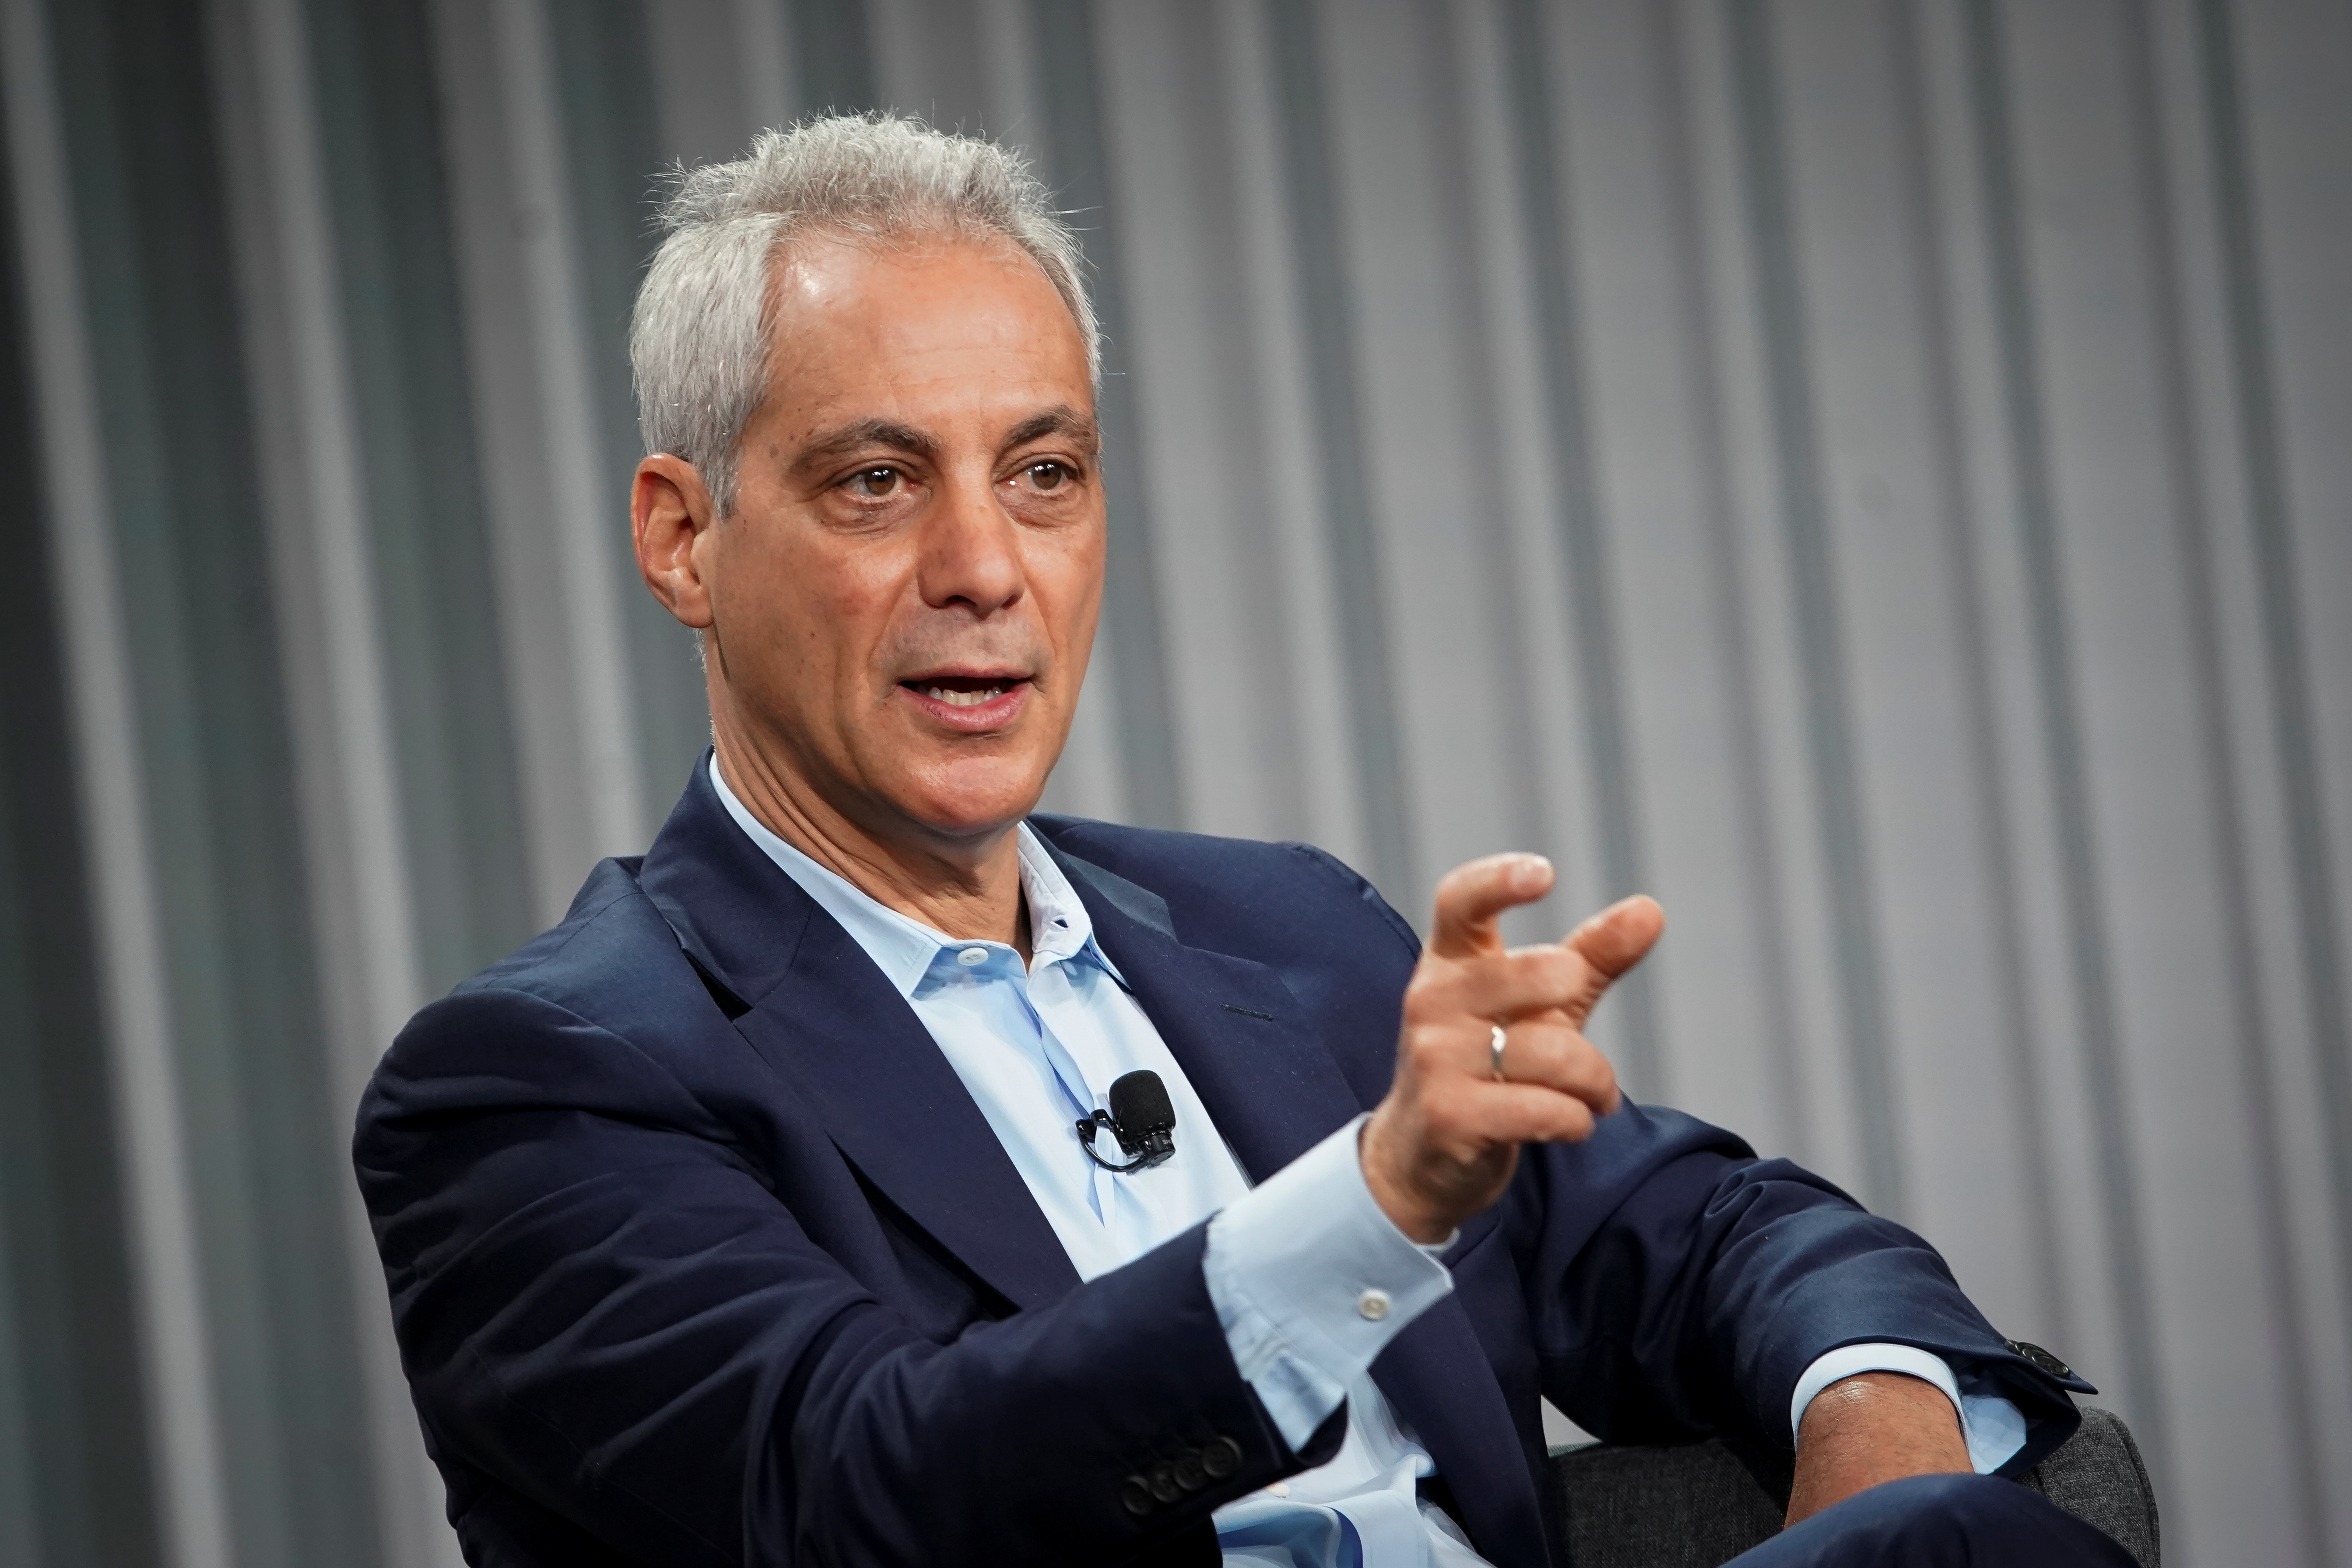 Rahm Emanuel, former mayor of Chicago, speaks during the Wall Street Journal CEO Council, in Washington, U.S., December 10, 2019. REUTERS/Al Drago